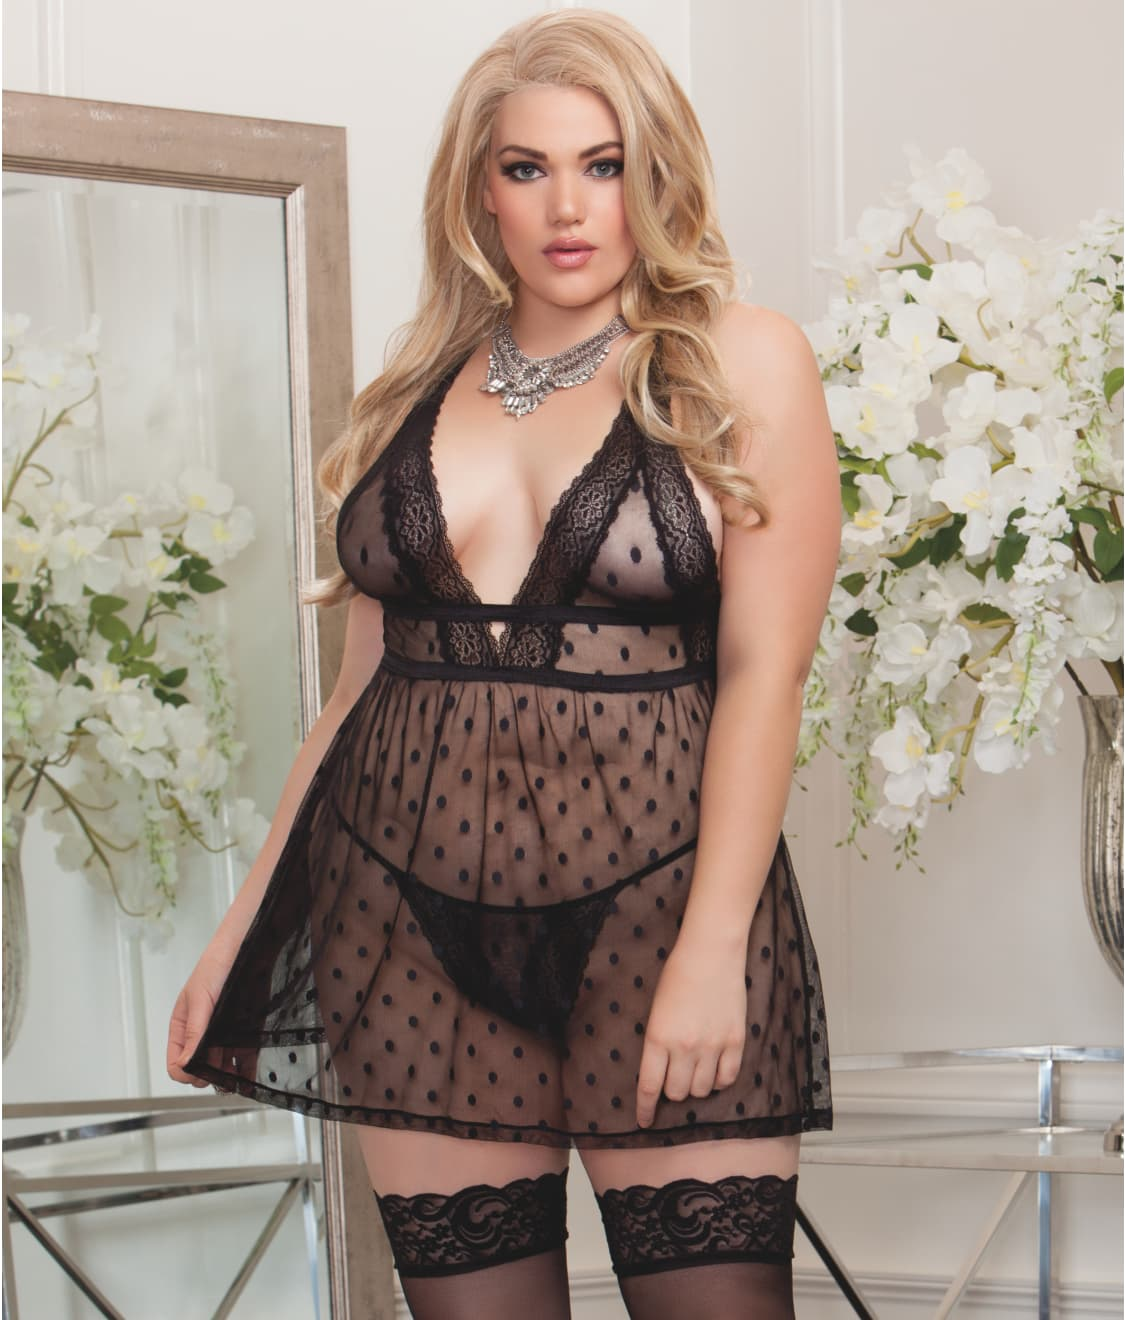 66bf2d9a0ae iCollection Plus Size Dot Mesh And Lace Babydoll Set